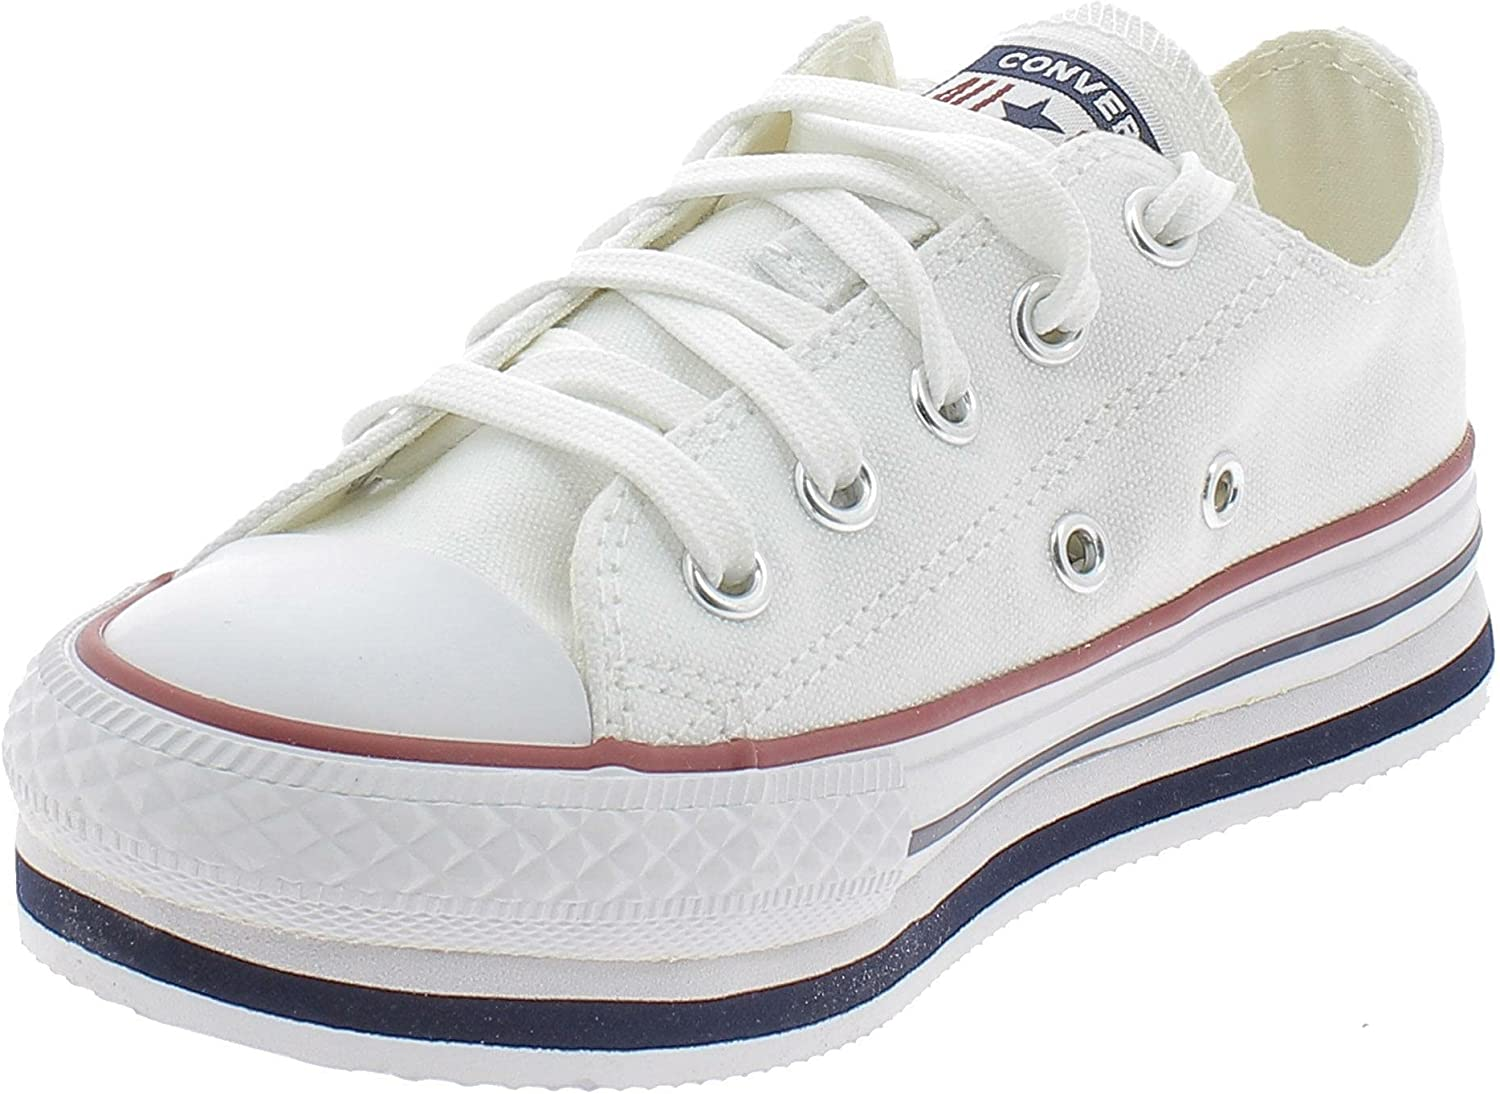 Converse Chuck Taylor All Star Platform Eva Everyday Ease Trainers Girls White